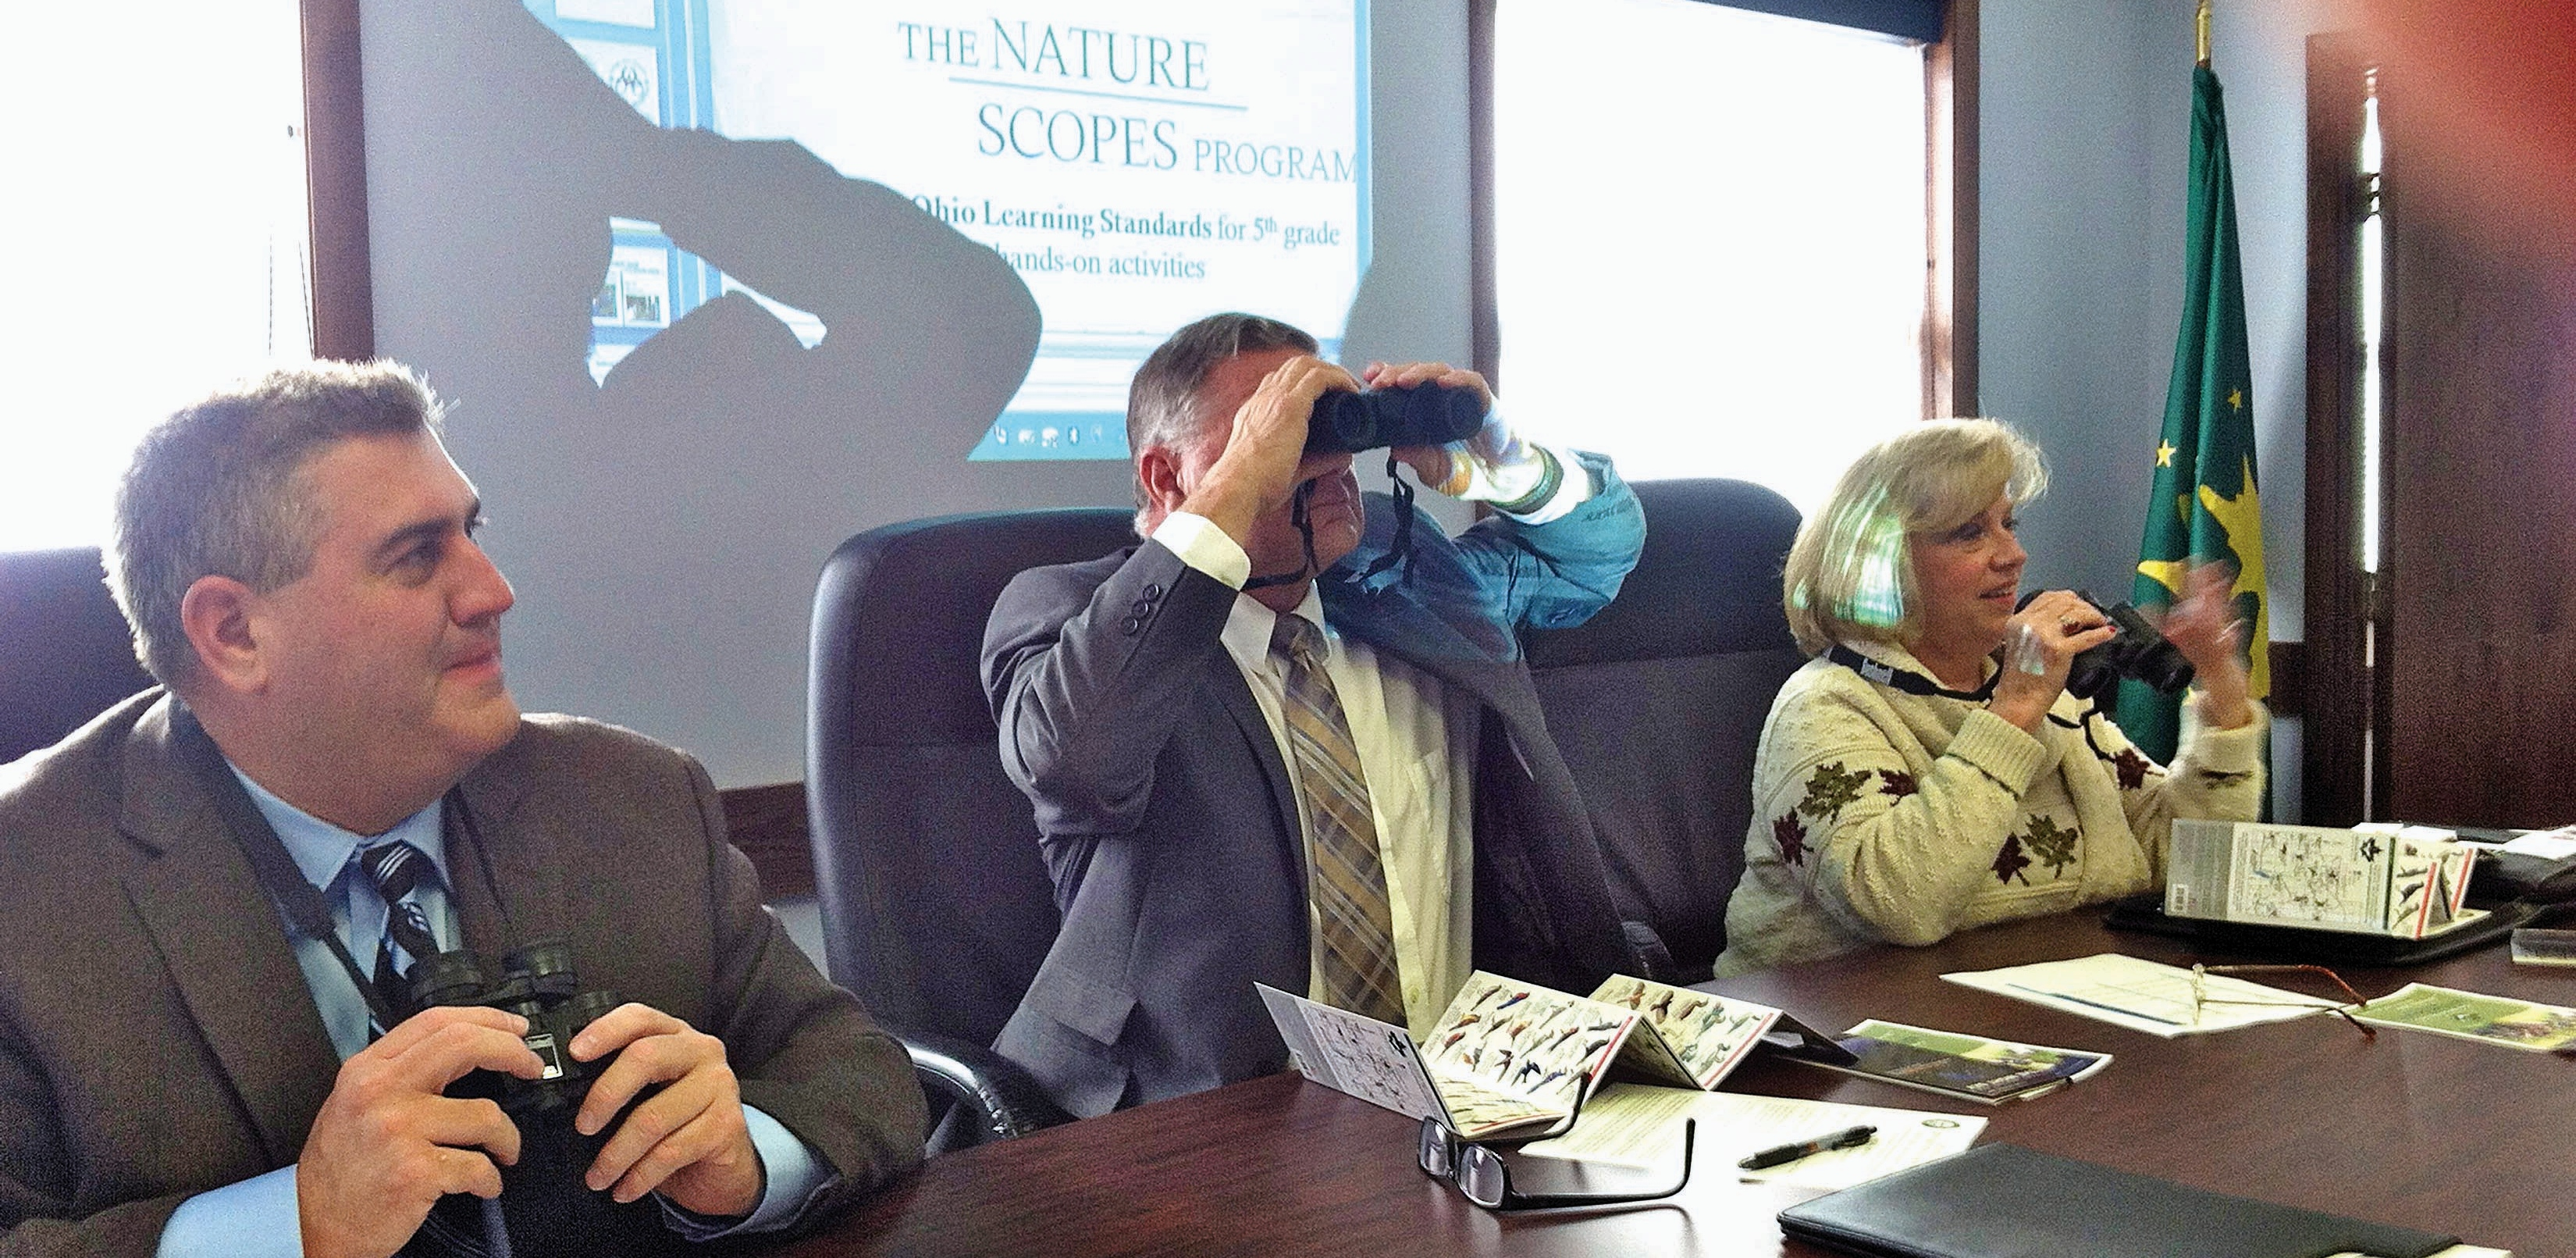 Screaming Frogs: Commissioners Enjoy Nature Scopes Presentation